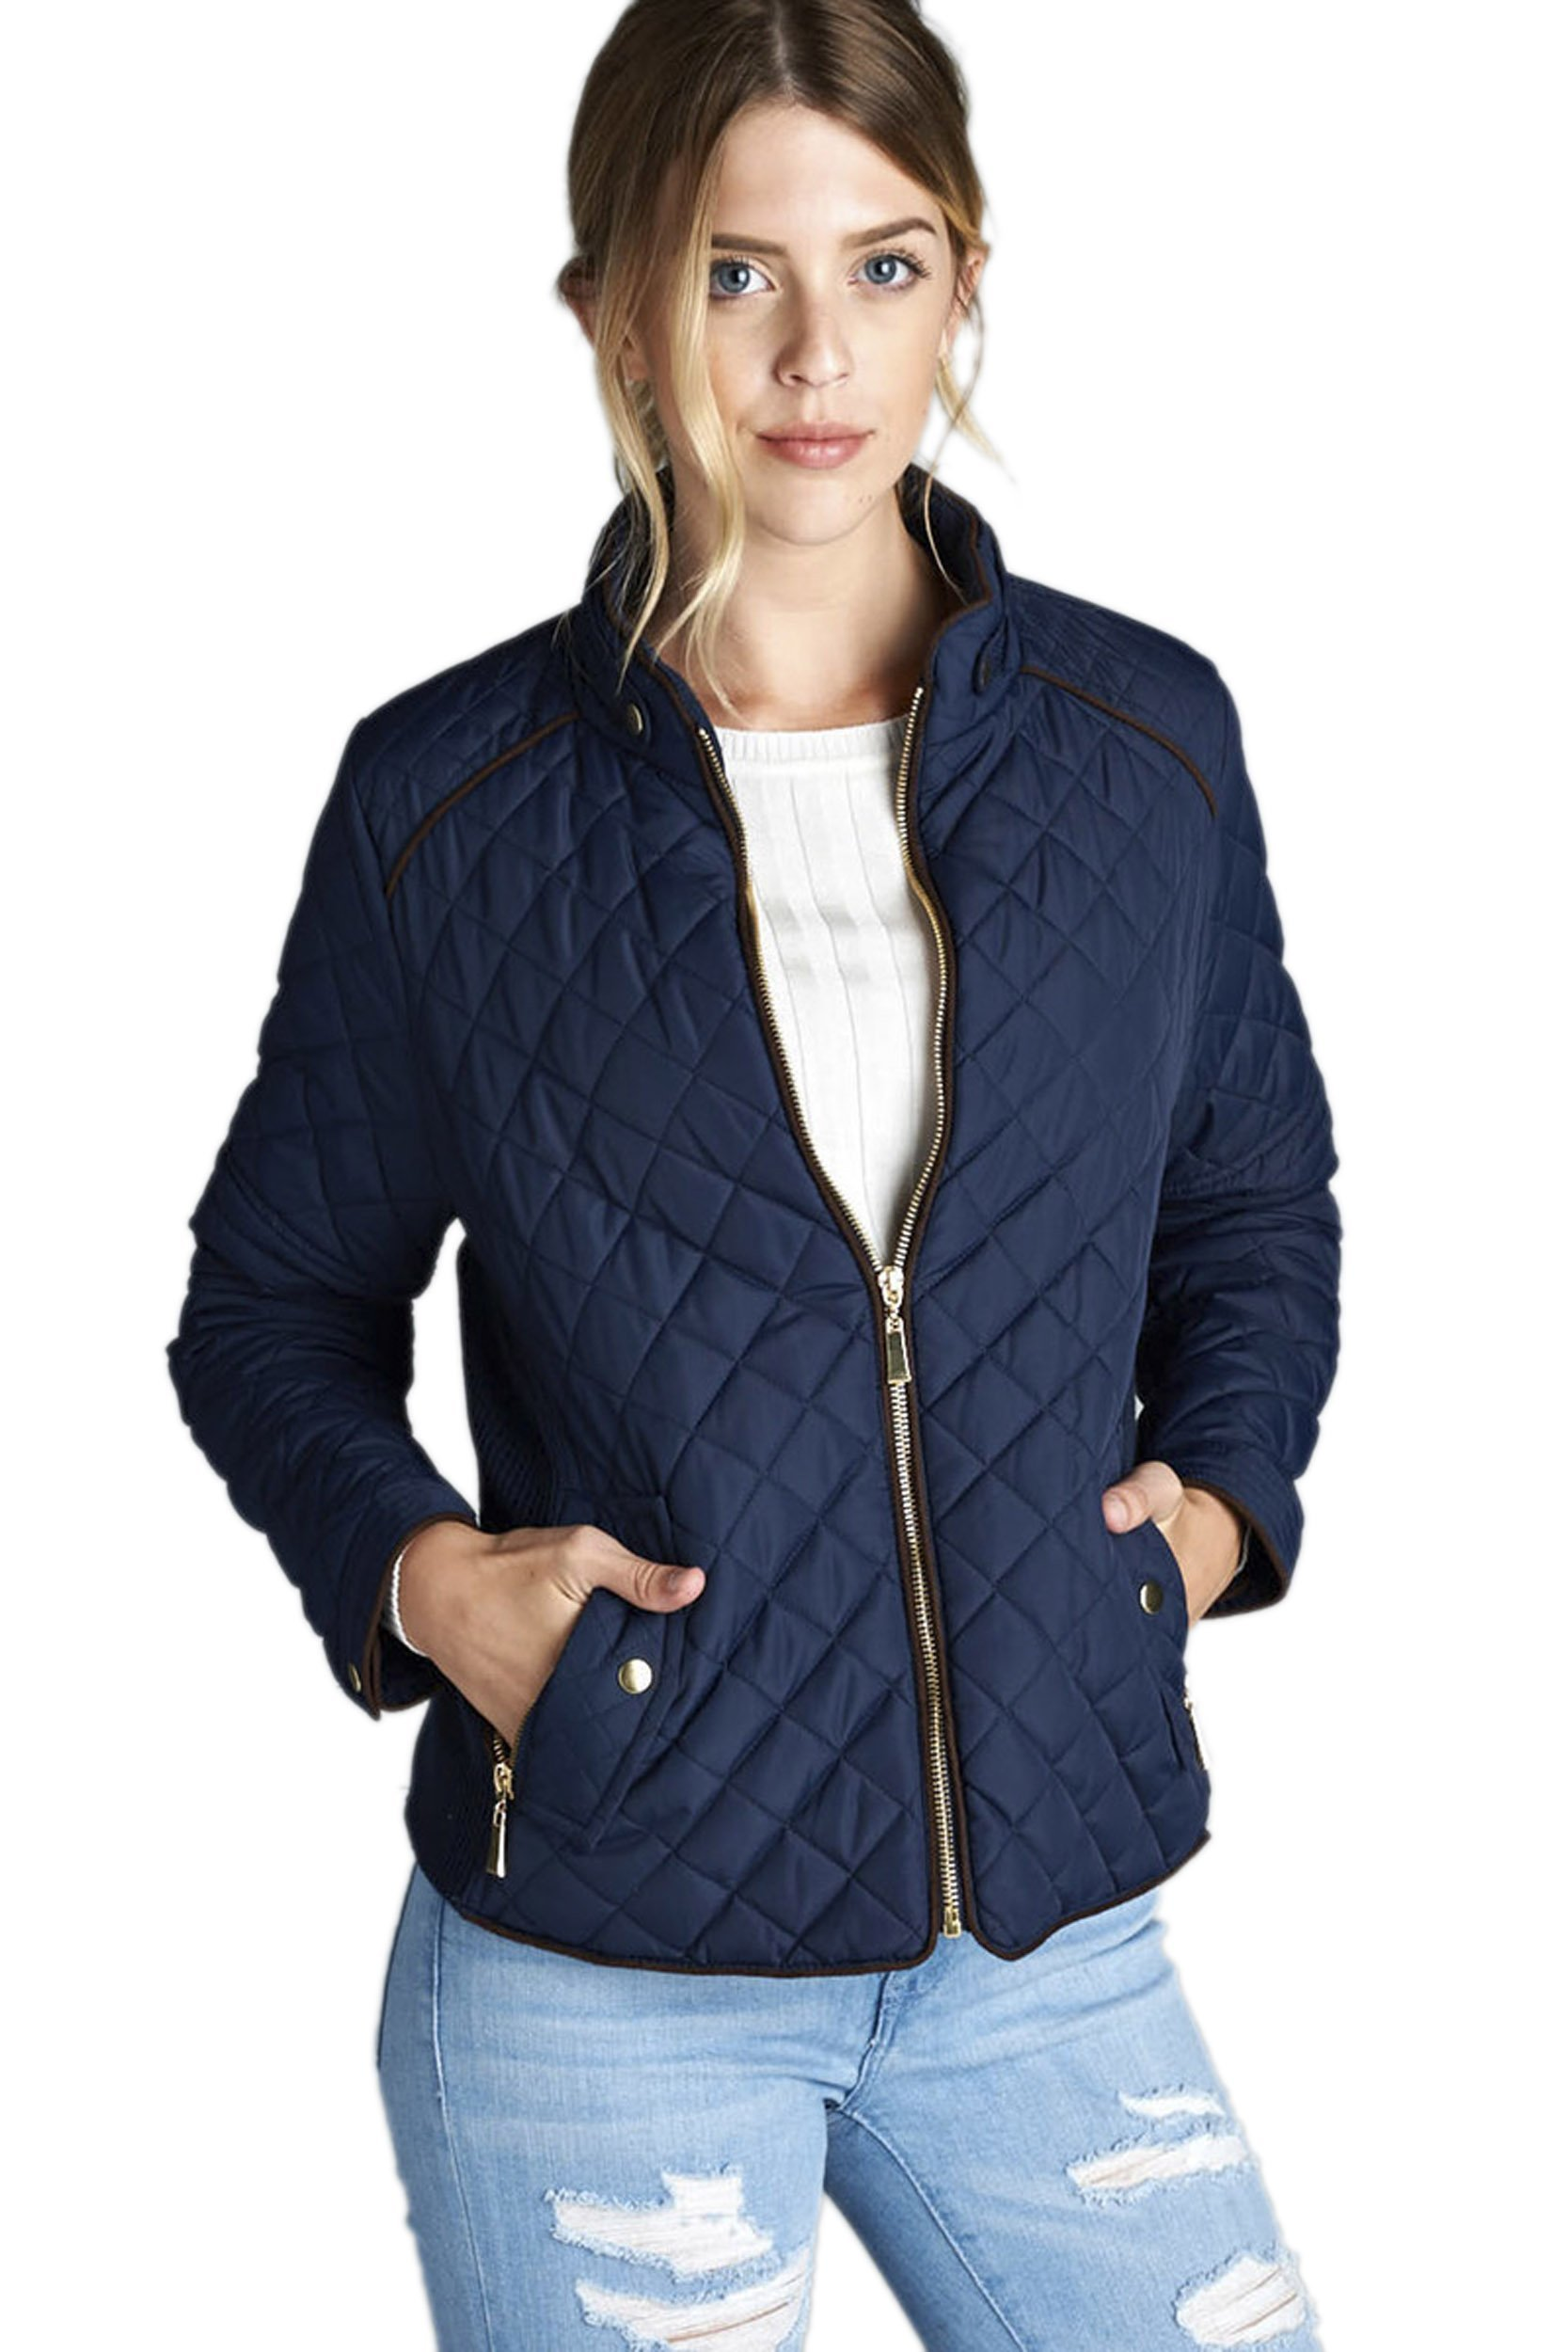 TOP LEGGING TL Women's Fab Classic Padded Quilted Lightweight Zip Up Jacket With Pockets 10_DKNAVY S